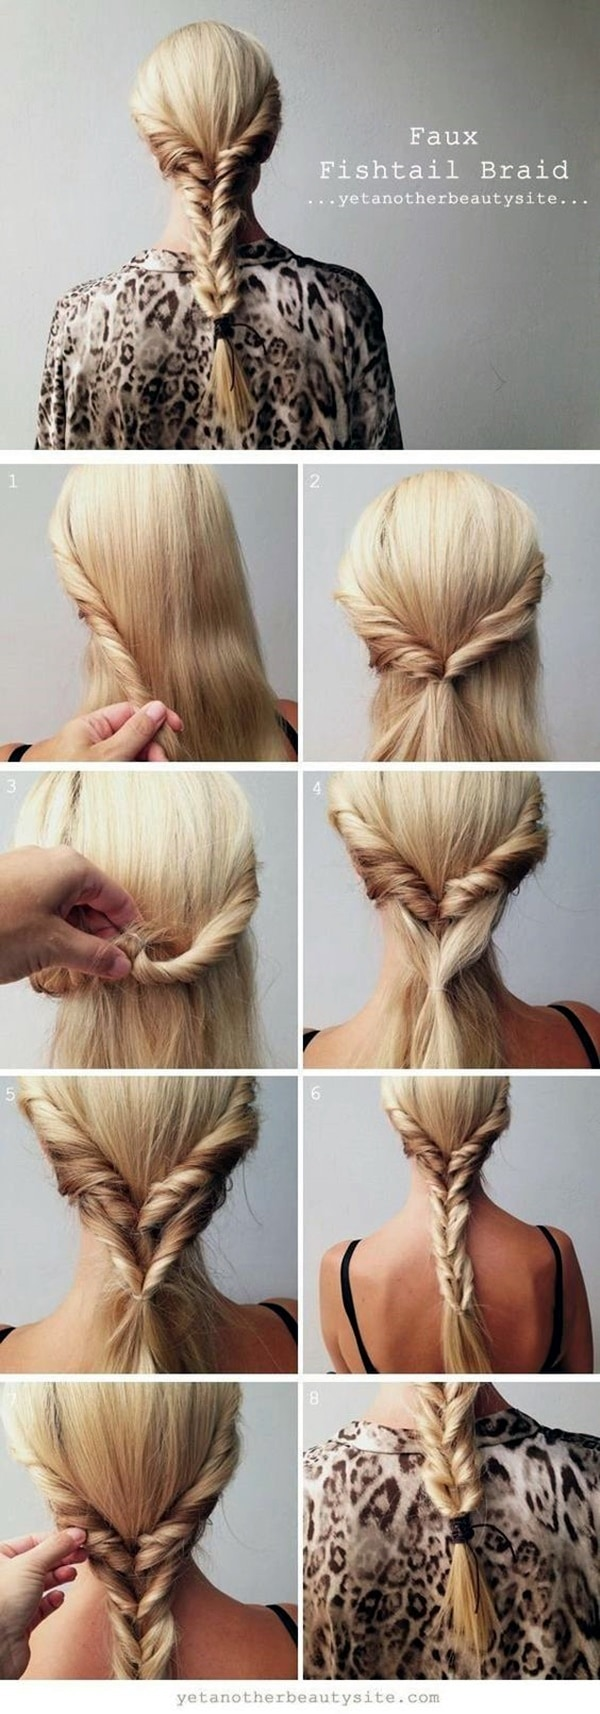 99 Quick Hairstyle Tutorials For Office Women